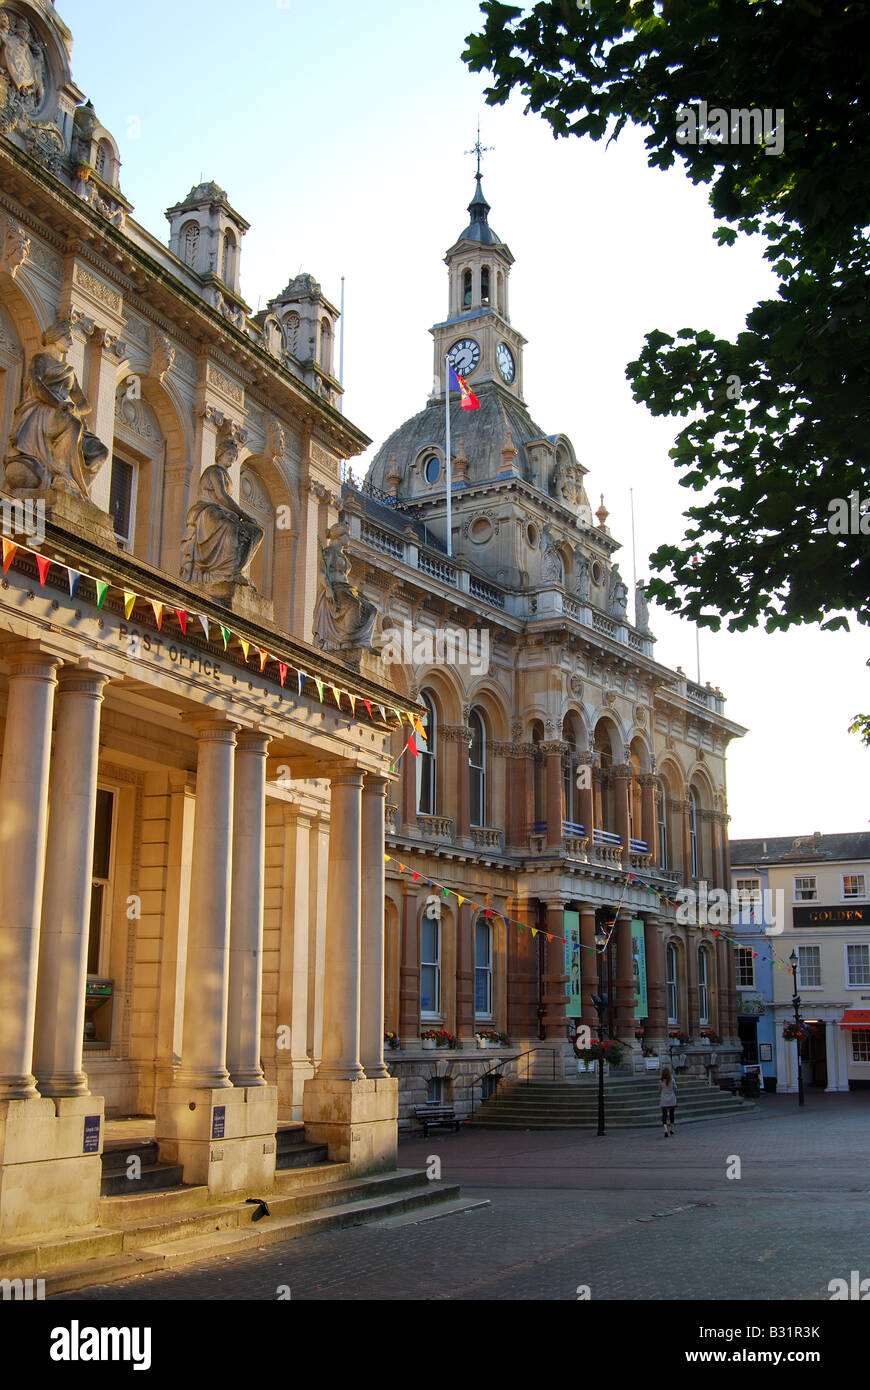 The Town Hall at sunrise, The Cornhill, Ipswich, Suffolk, England, United Kingdom - Stock Image